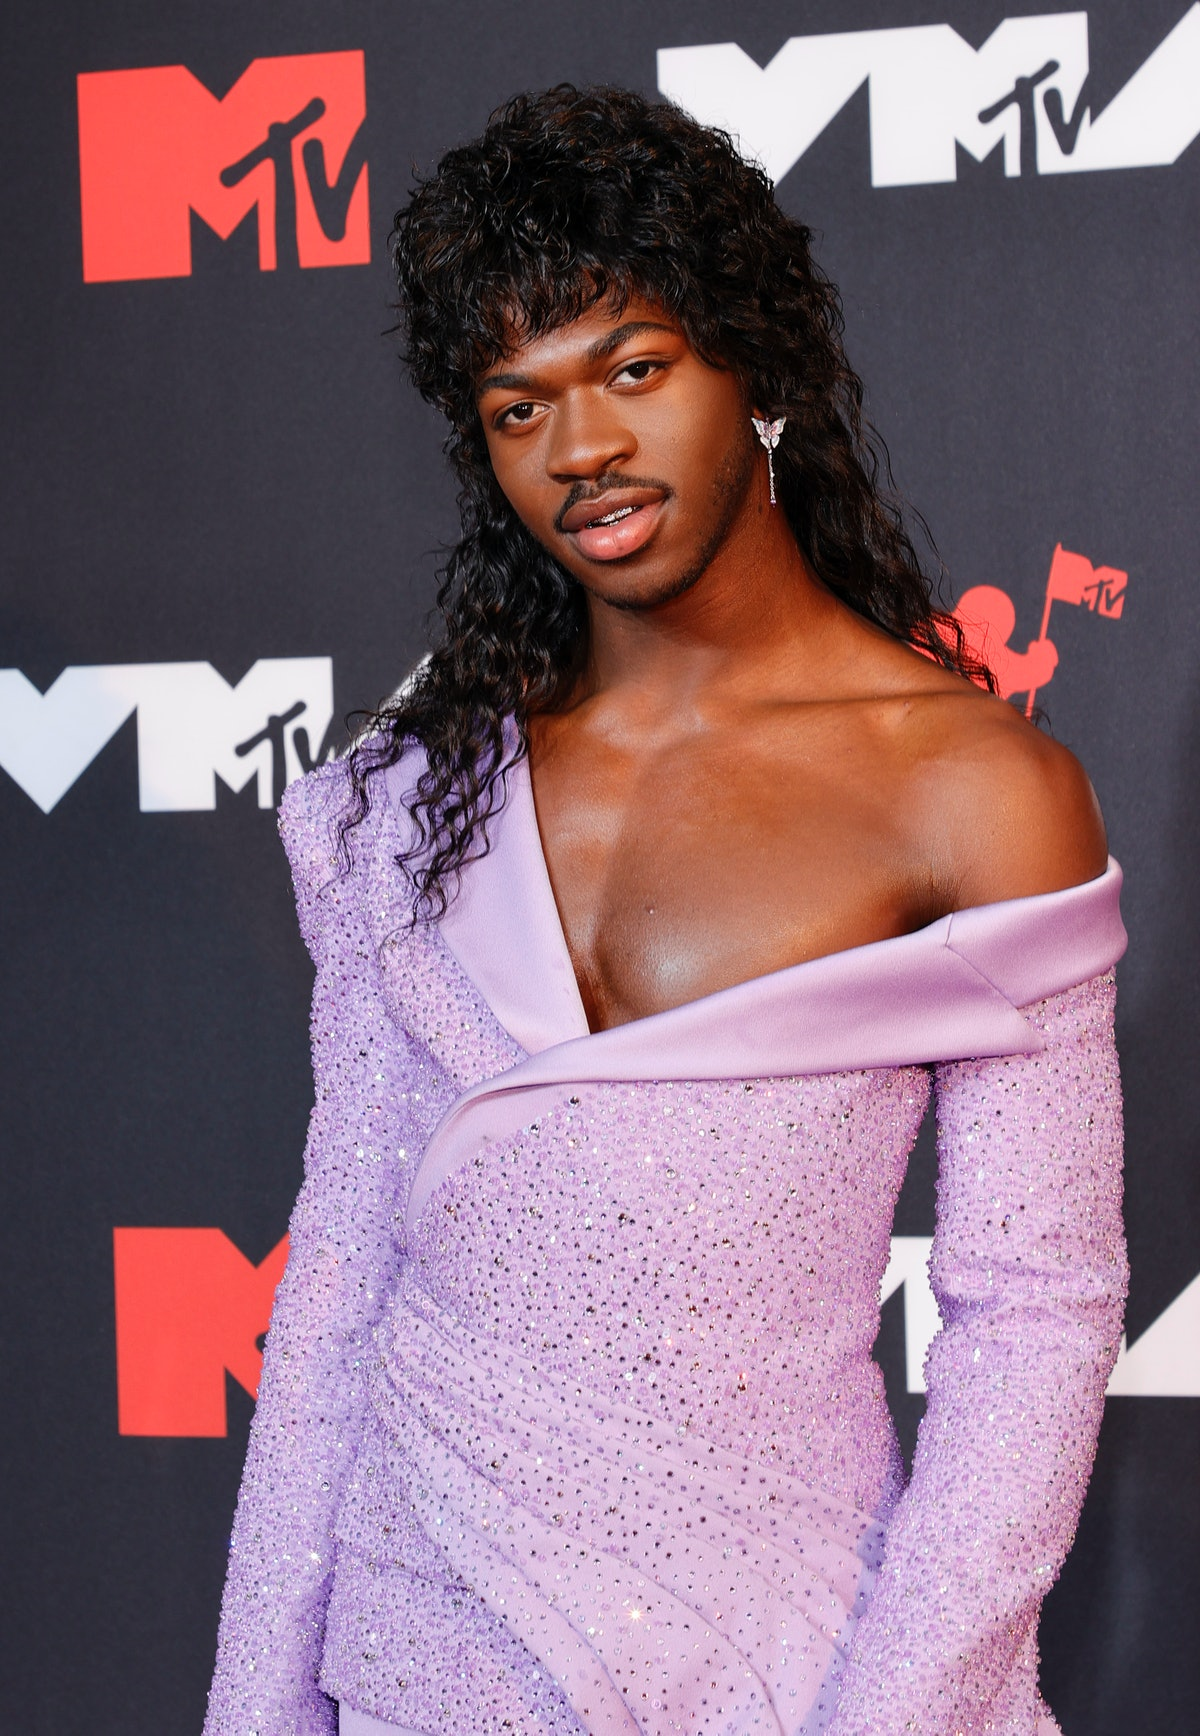 Lil Nas X attends the 2021 MTV Video Music Awards at Barclays Center on September 12, 2021 in the B...